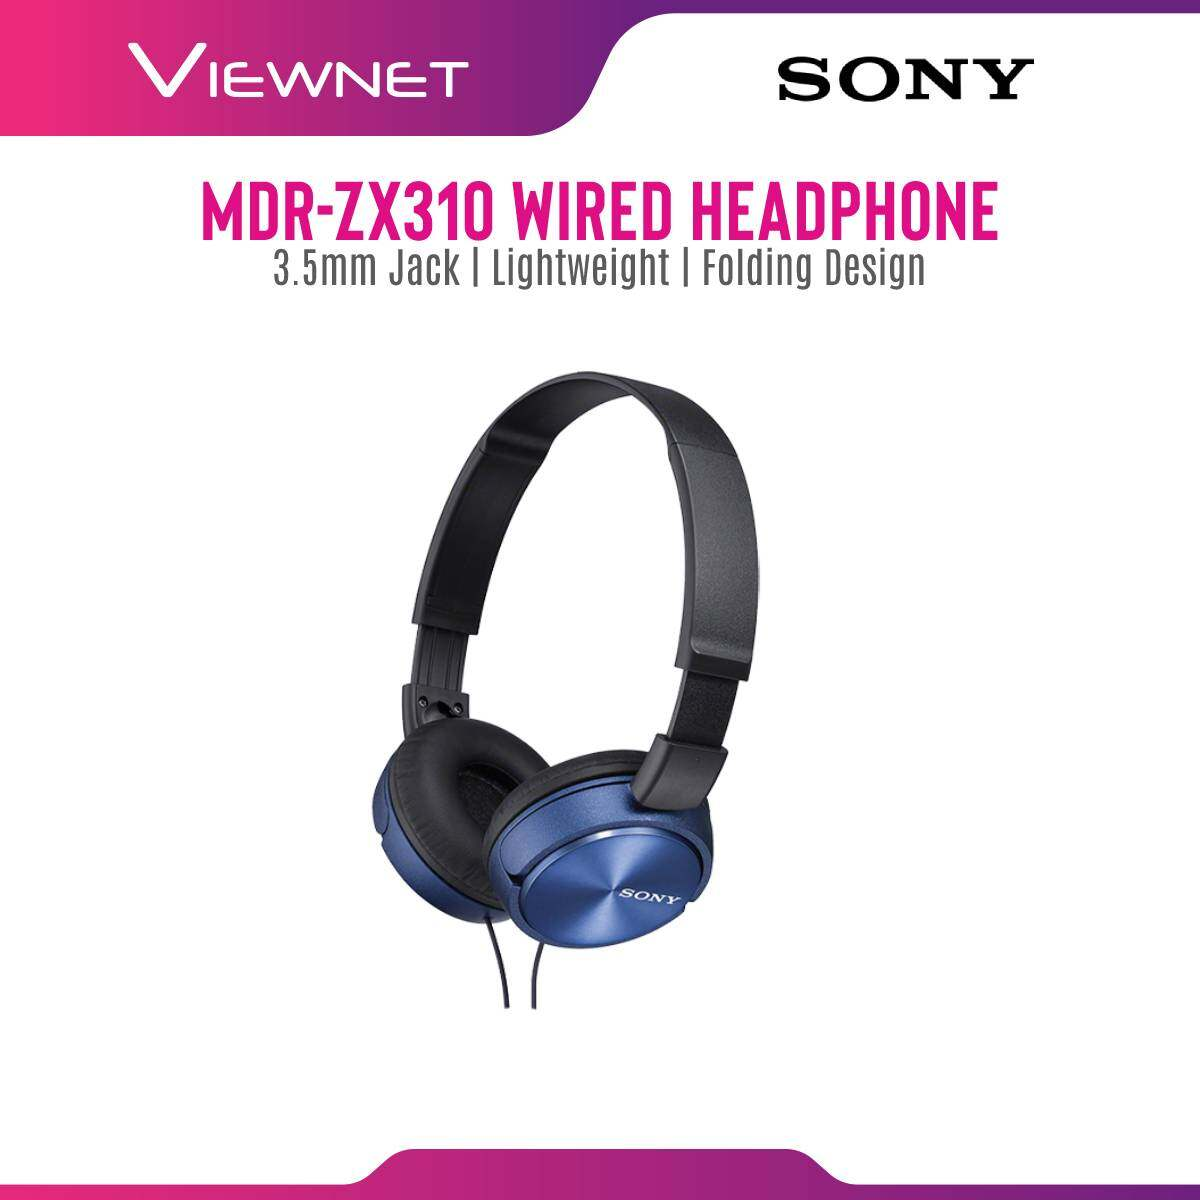 Sony MDR-ZX310 Lightweight Foldable On-ear Headphones with Padded Earcups (Black/White/Red/Blue)